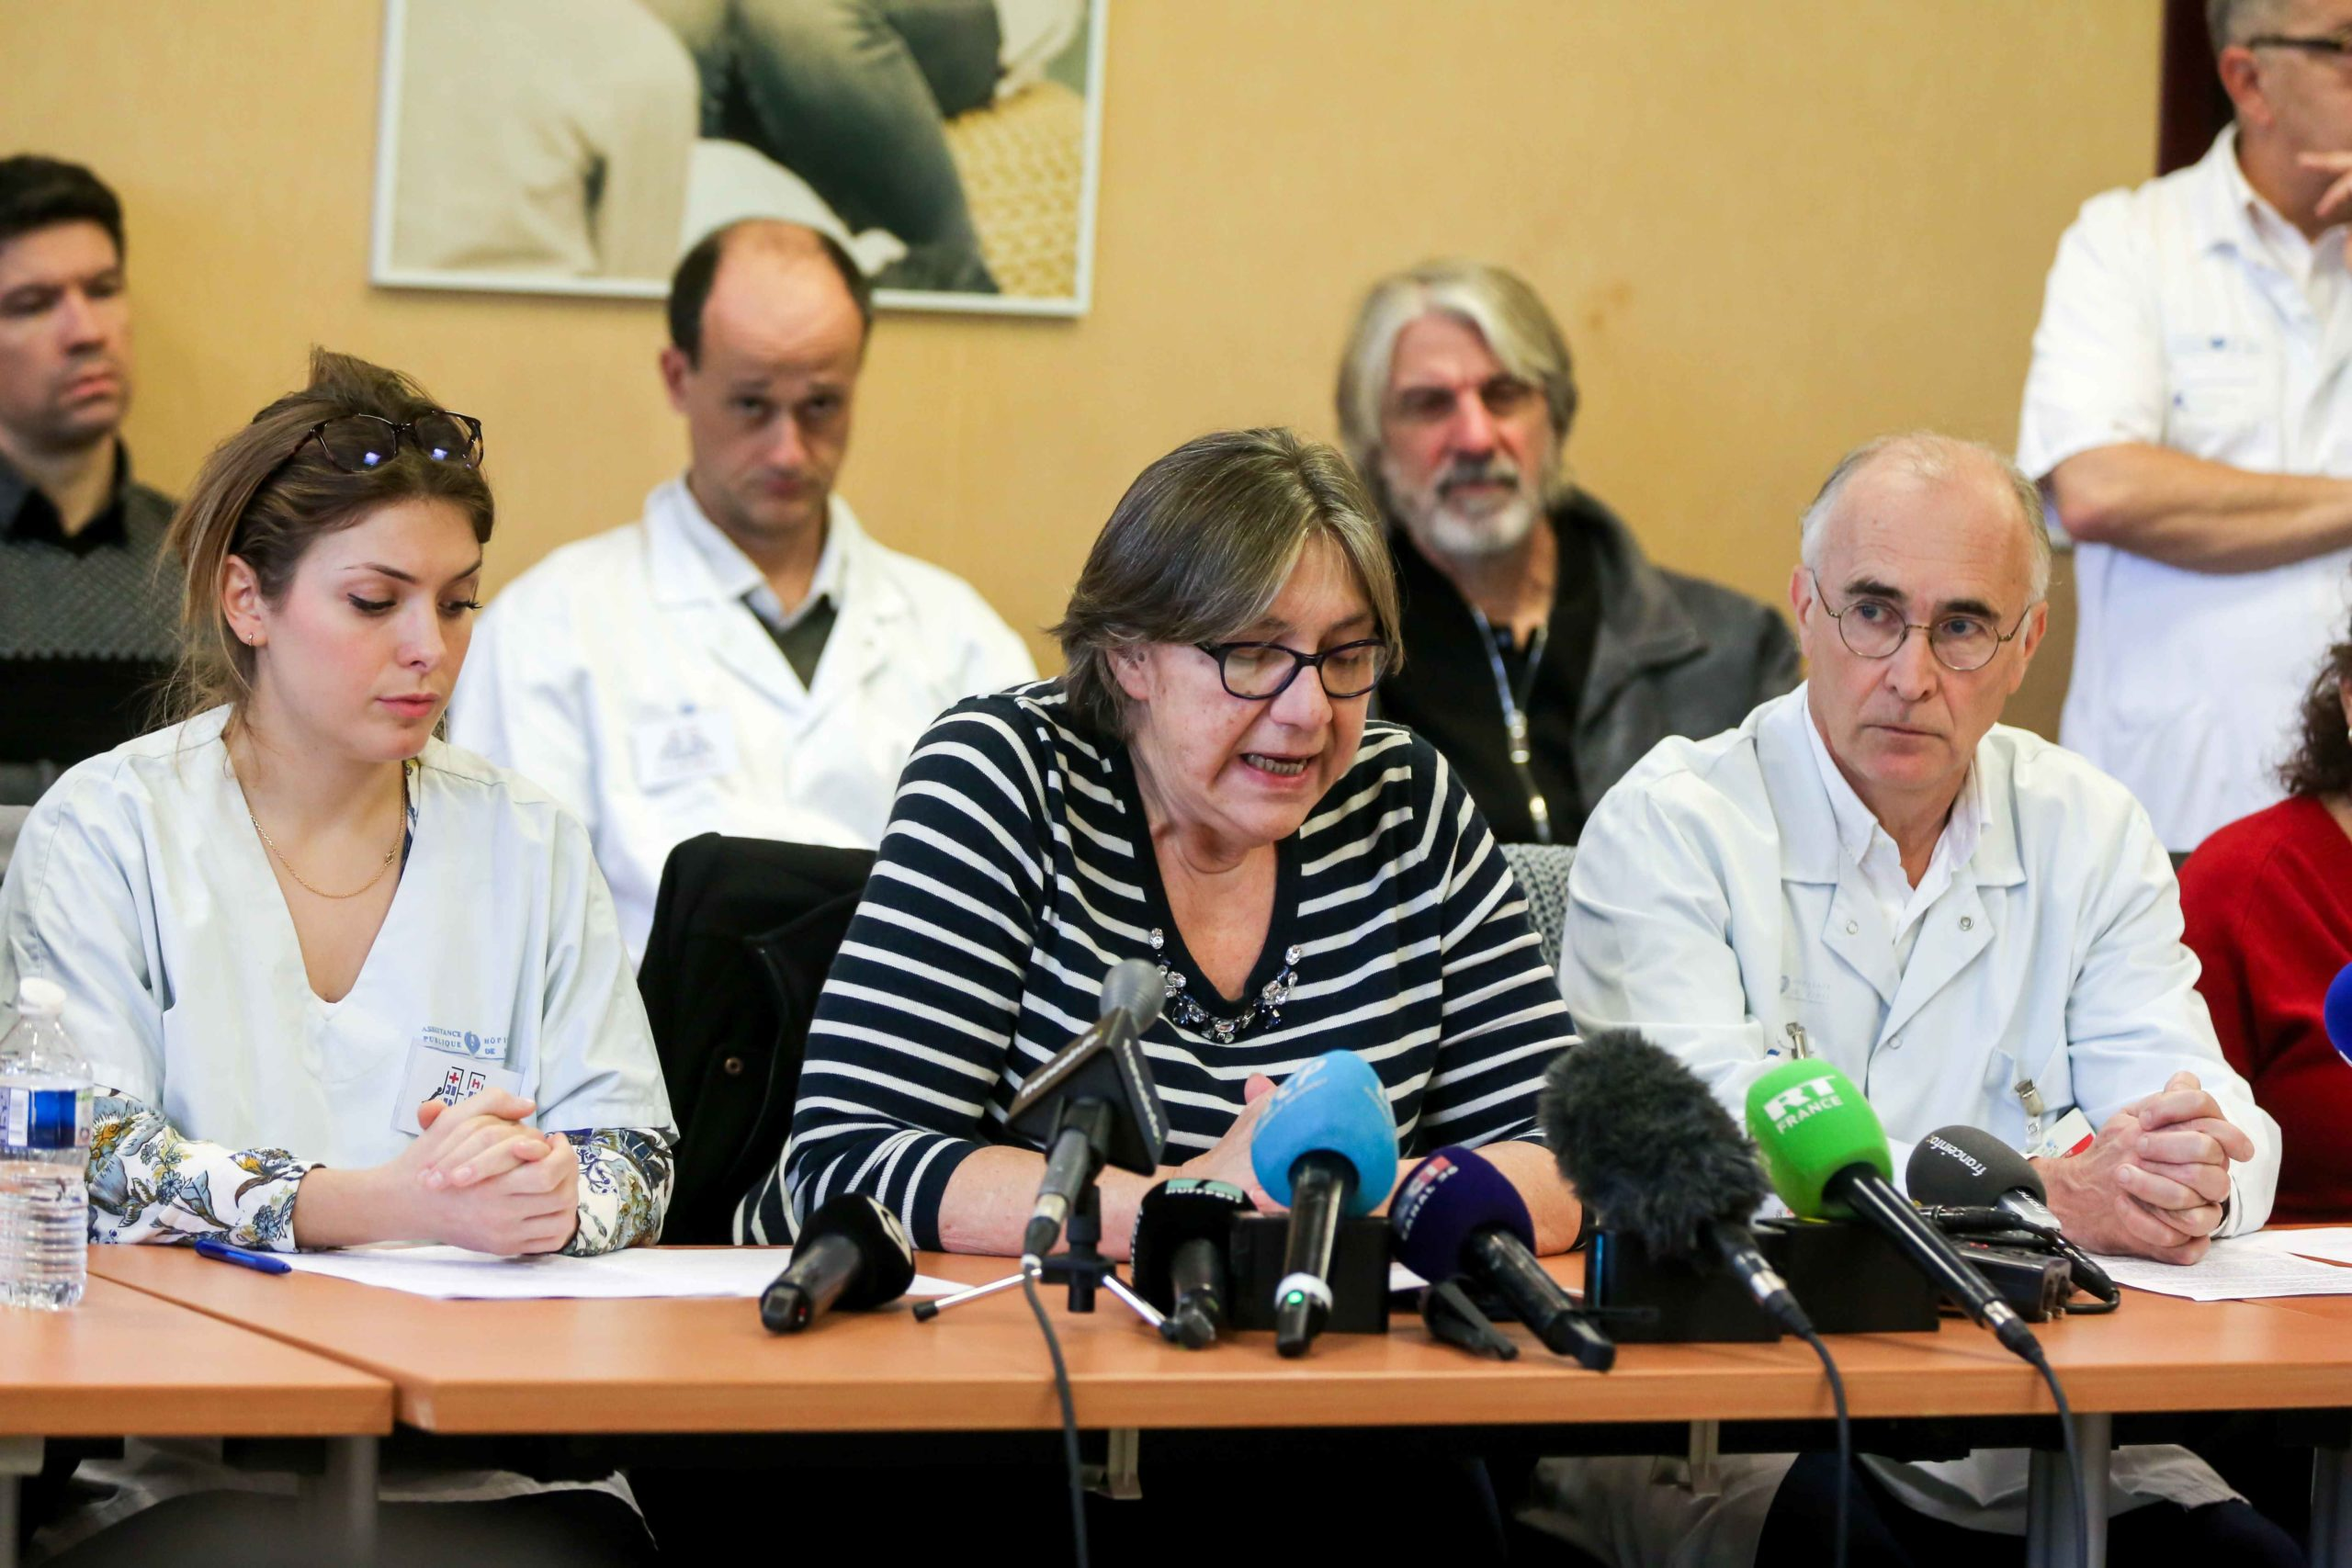 """Members of the """"CIH - Collectif Inter Hopitaux"""" (Inter-hospitals collective) give a press conference after the publication of a collective resignation letter to protest against the emergency plan proposed by the government, at the Pitie-Salpetriere hospita"""